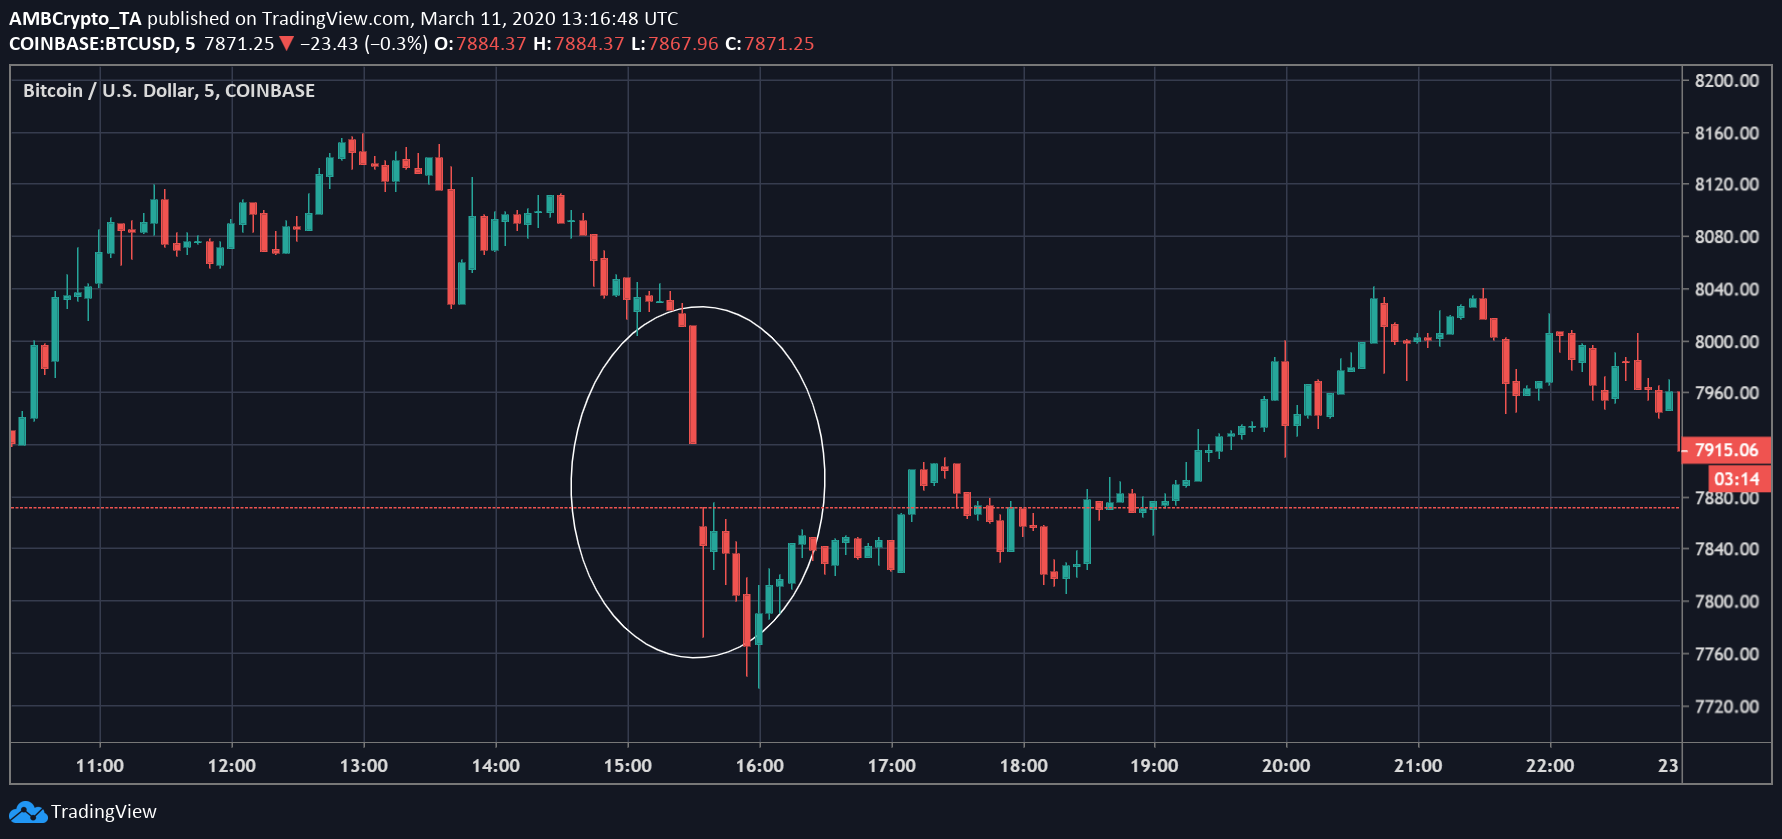 Source: BTC/USD on Trading View